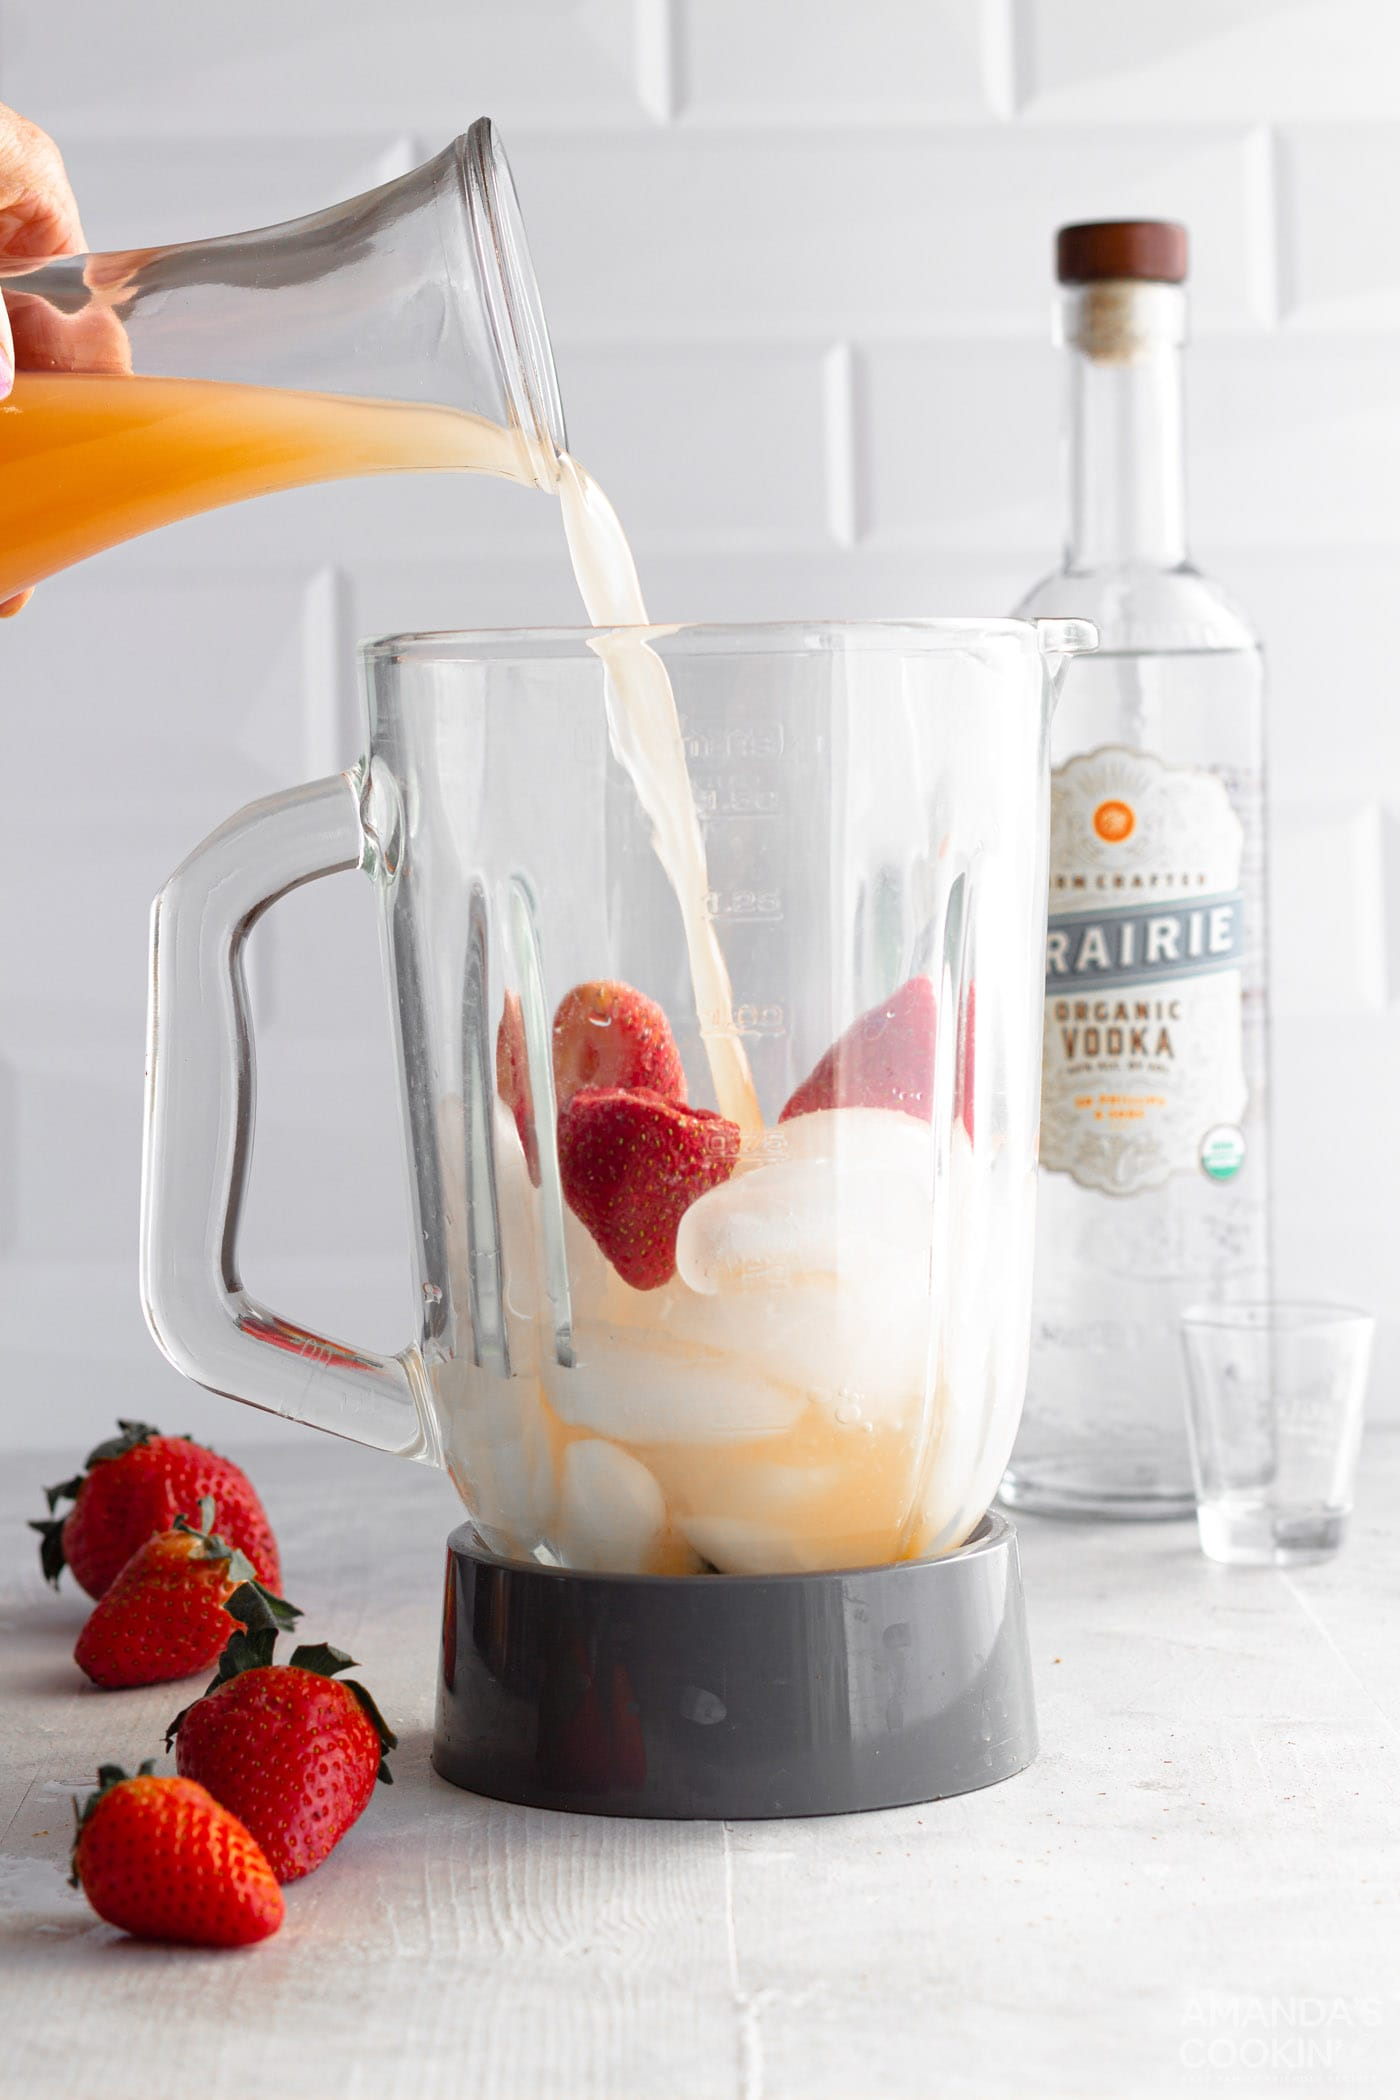 strawberries, ice, grapefruit juice, and vodka in a blender